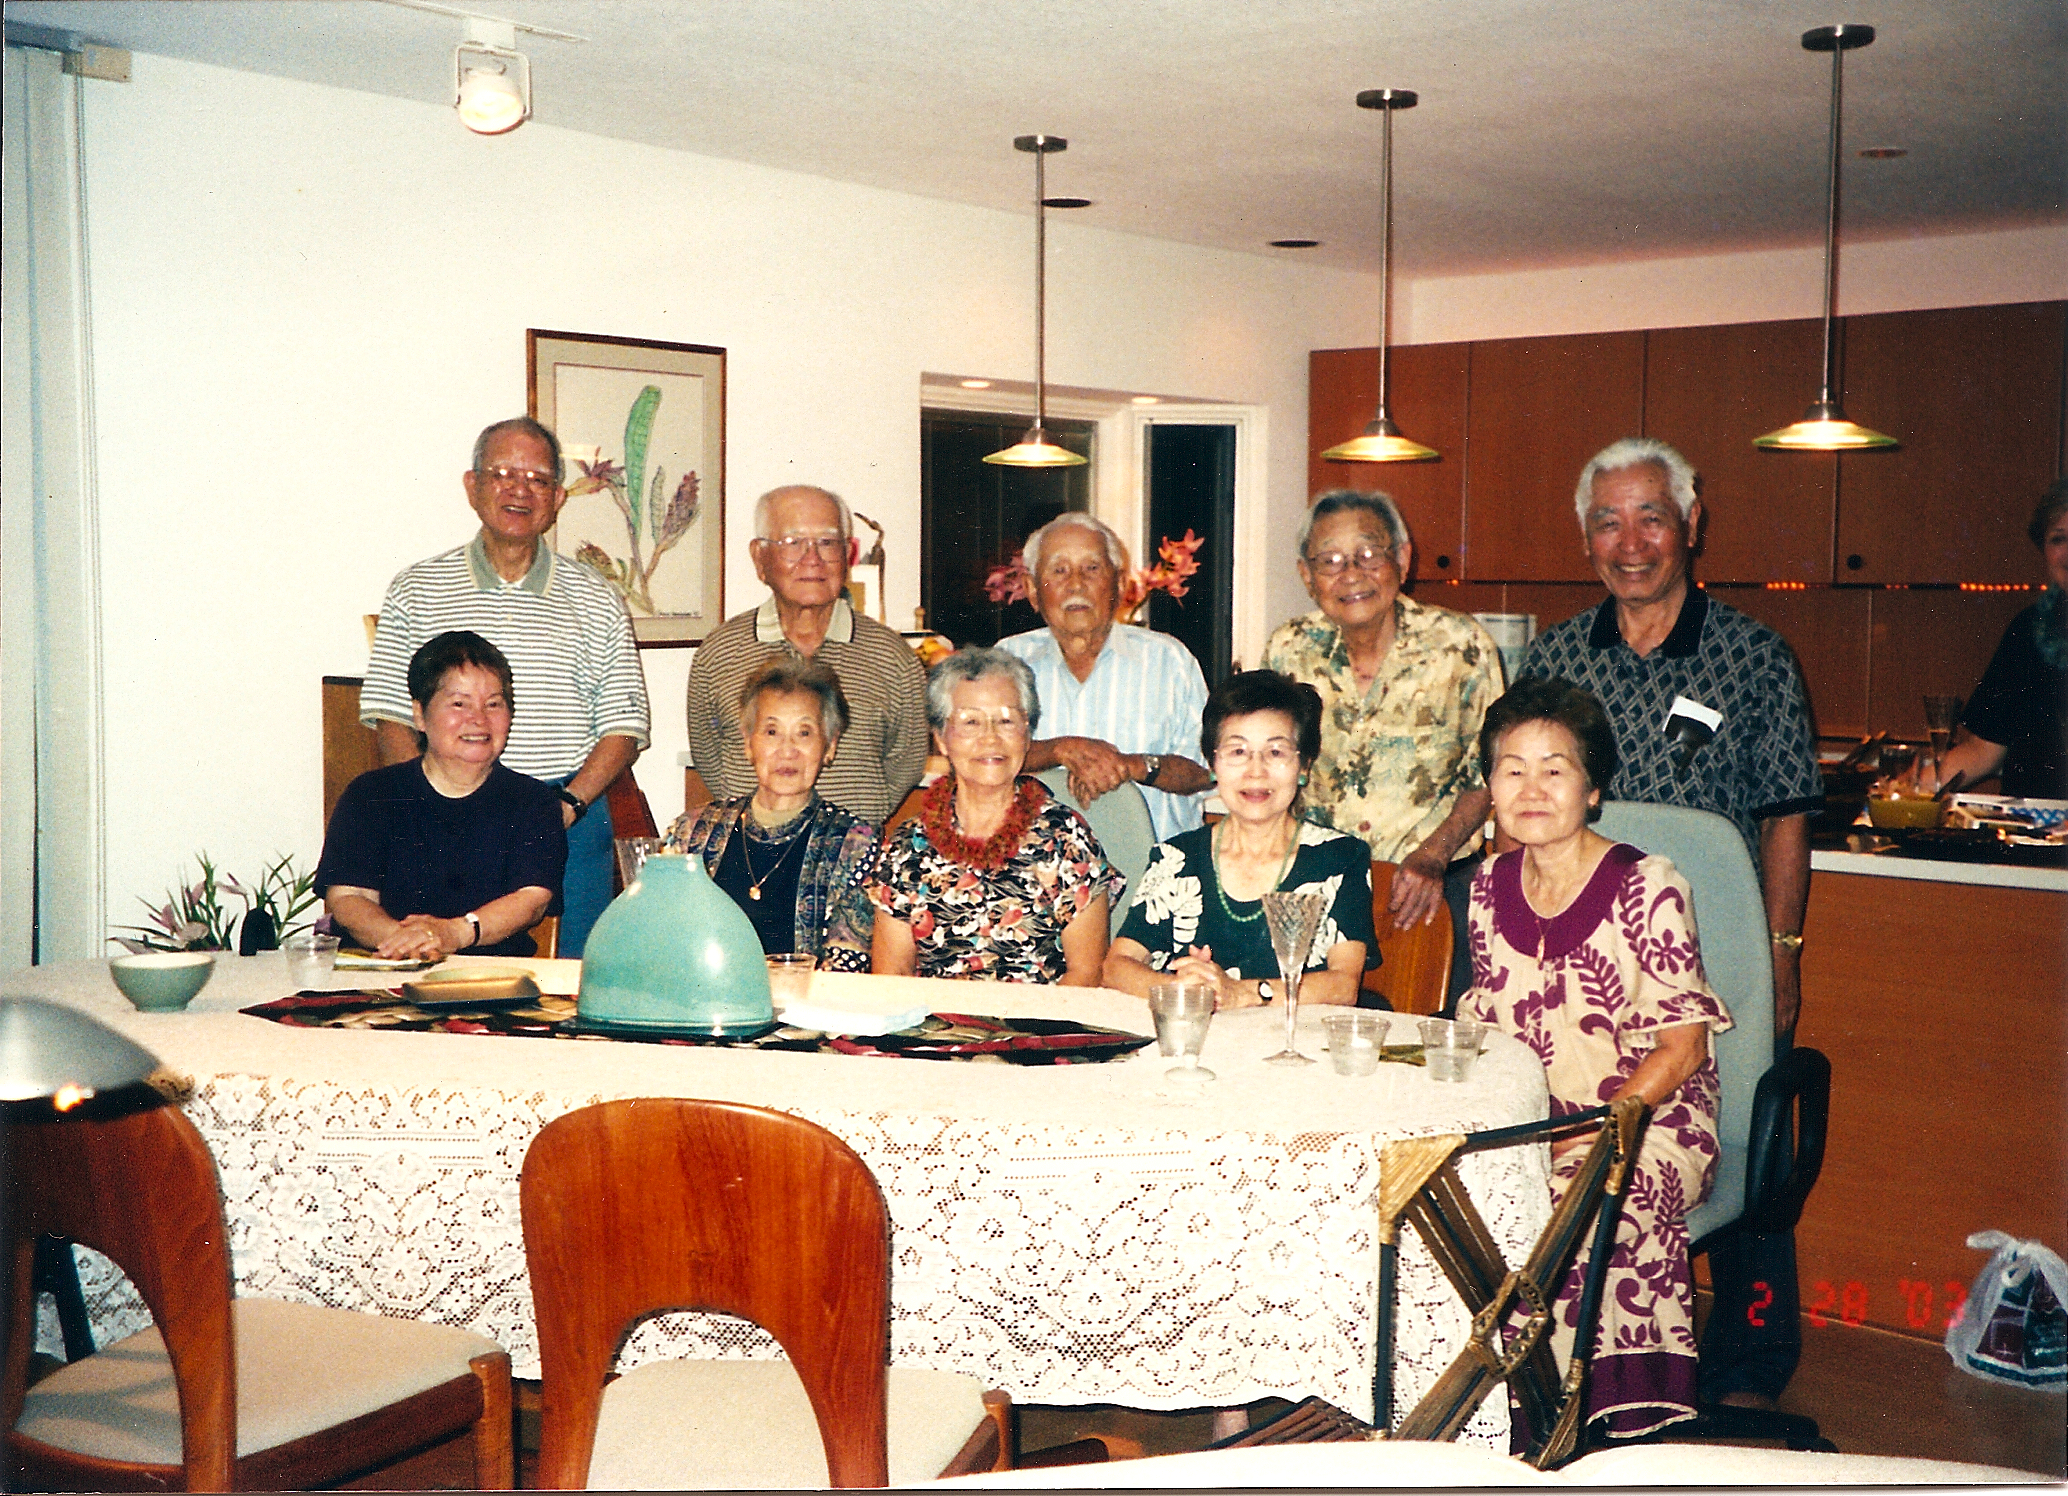 Mildred and Tom Kobashikawa, pictured here with her siblings and their spouses, enjoyed 67 years of marriage, until he passed in 2006. From left: sister Ethel and Harold Isa, sister-in-law Yoshiko and brother Ted Oshiro, Mildred and Tom Kobashikawa, sister Nora and Kenneth Chibana, and sister Patsy and Harold Afuso. (Photo courtesy Karen Fuse)